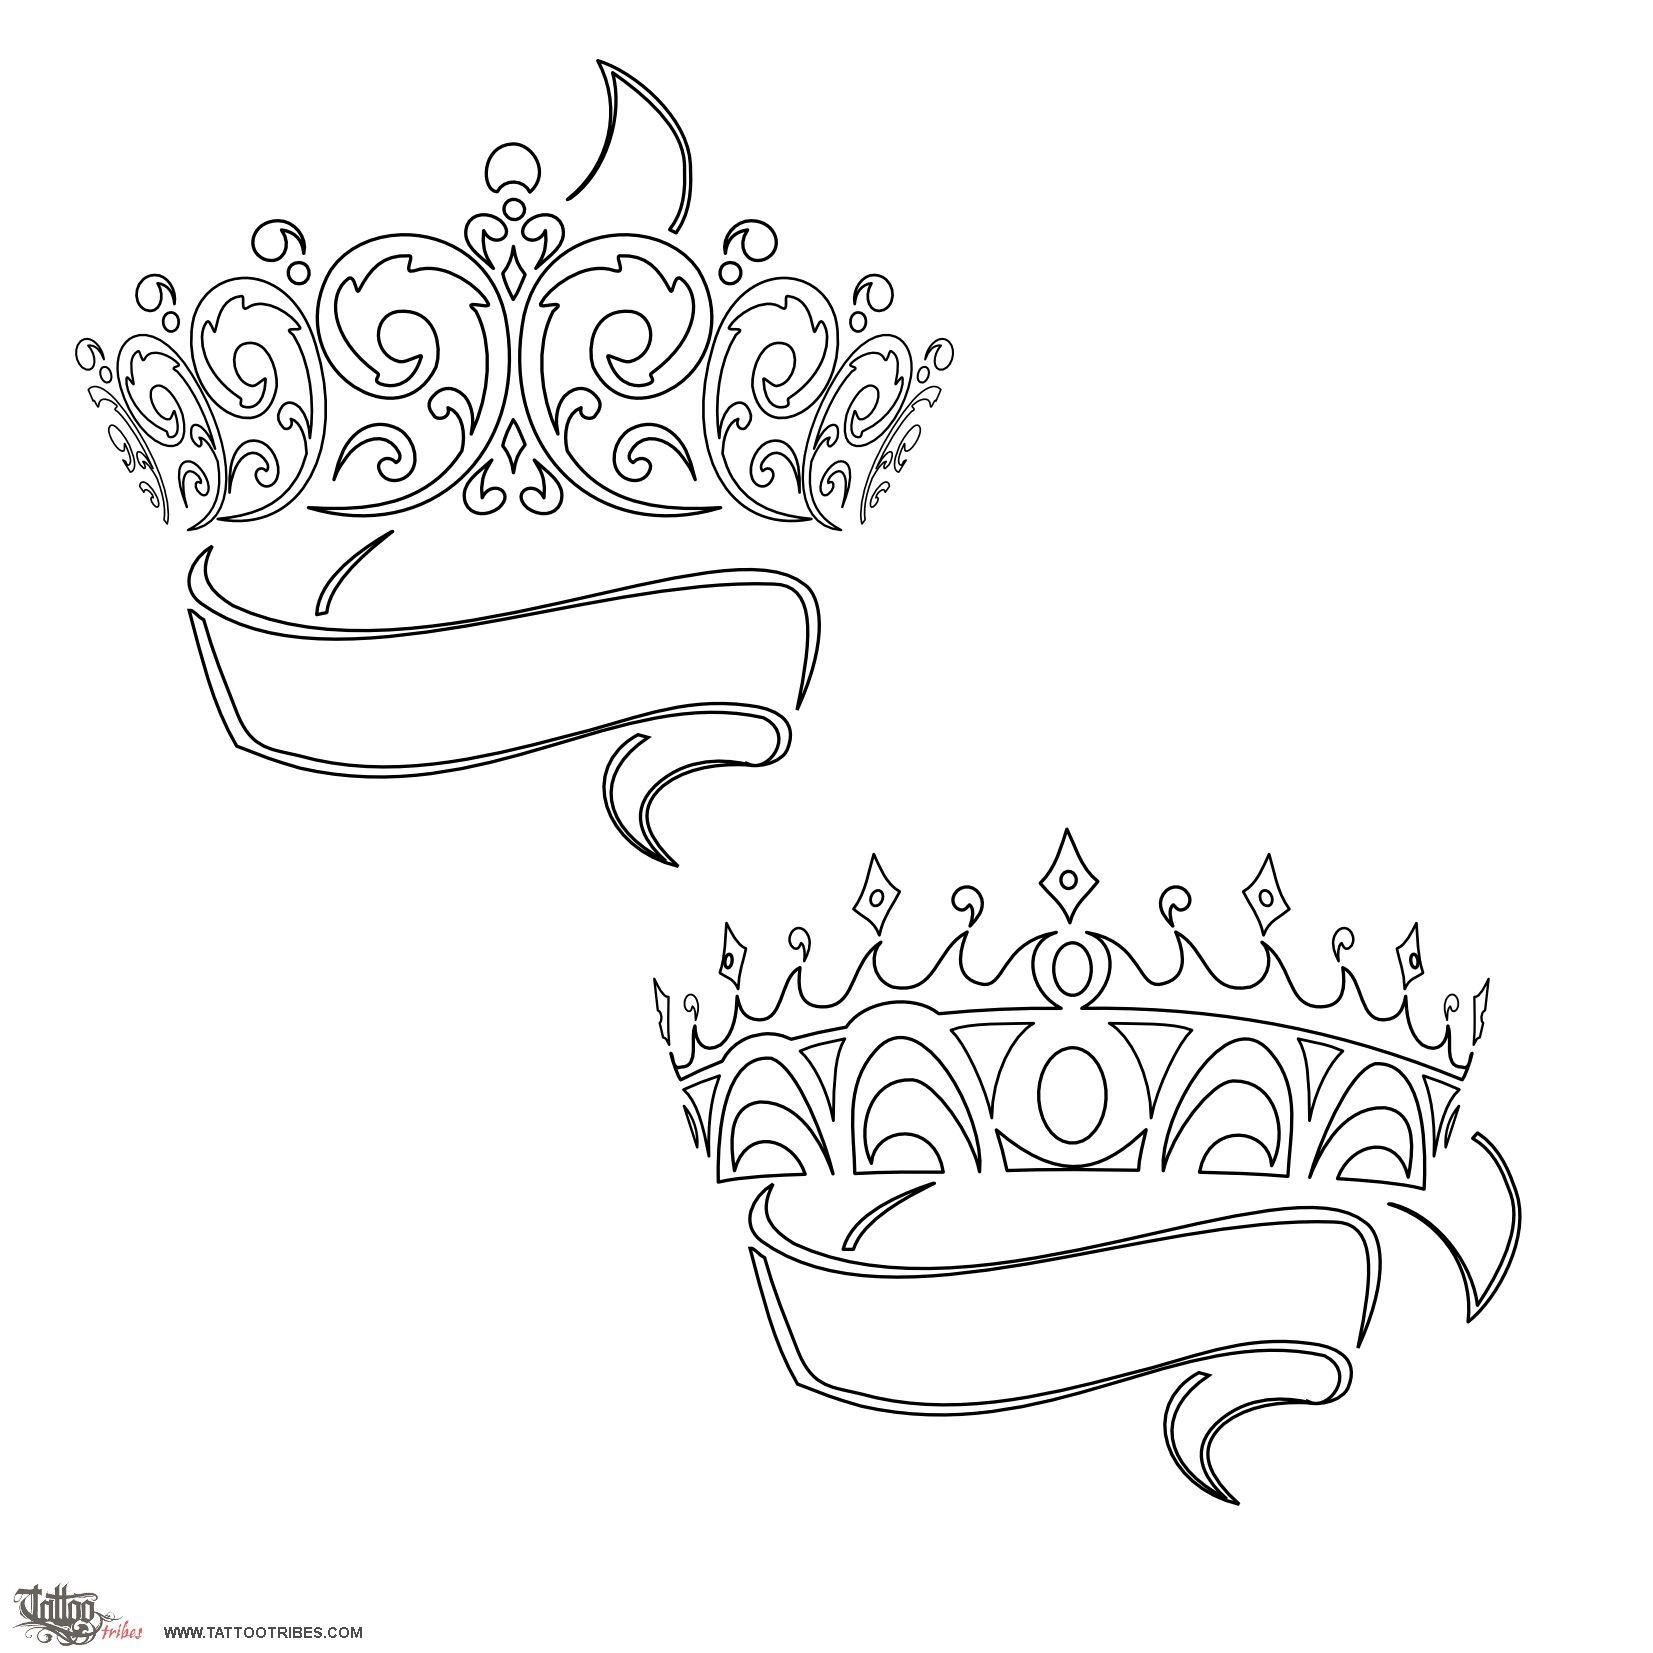 30+ Queen crown coloring page ideas in 2021